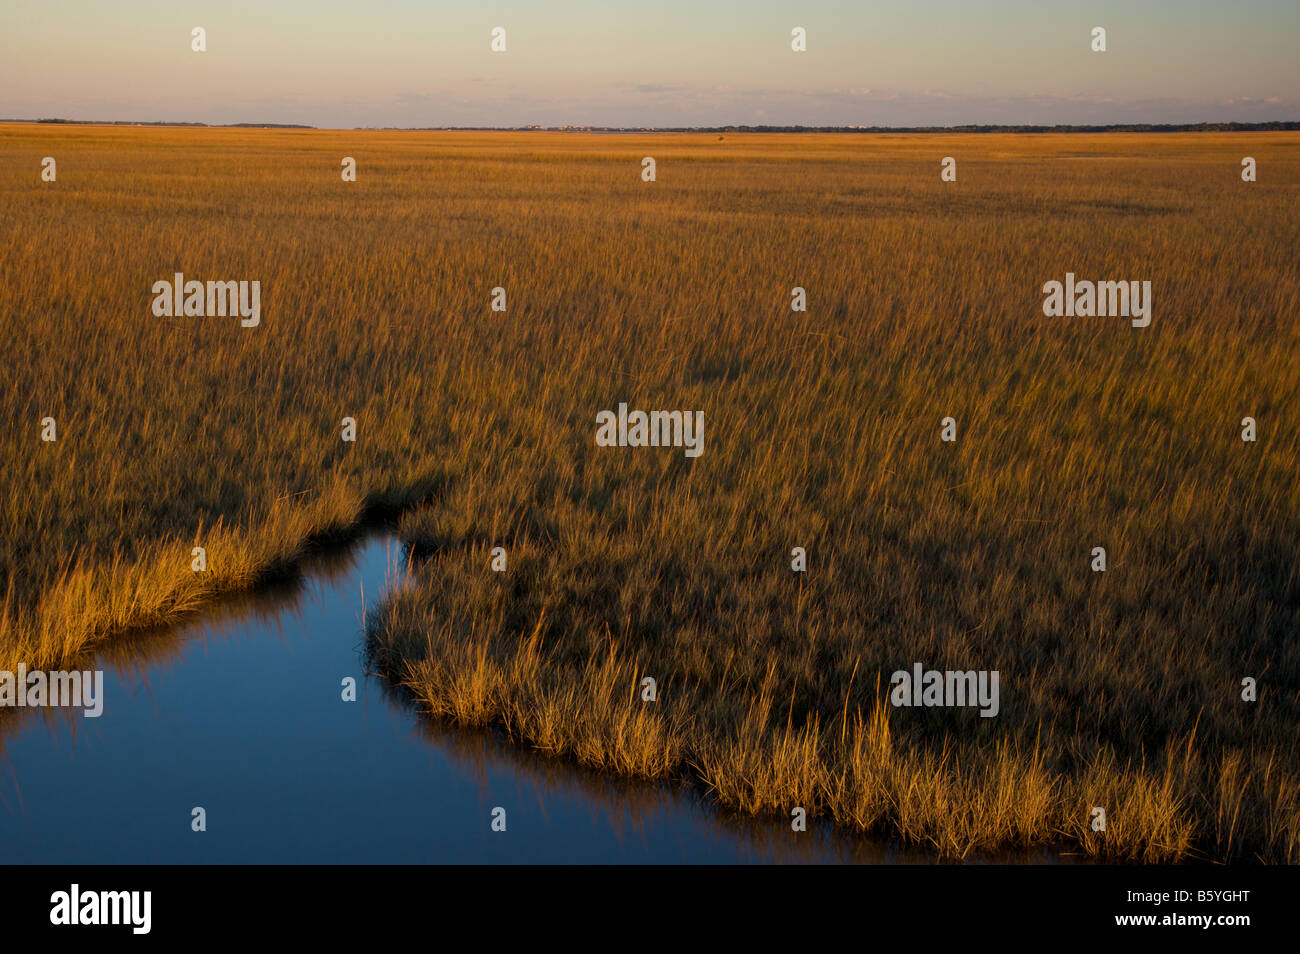 Saltwater marsh along the coast of South Carolina near Charleston - Stock Image